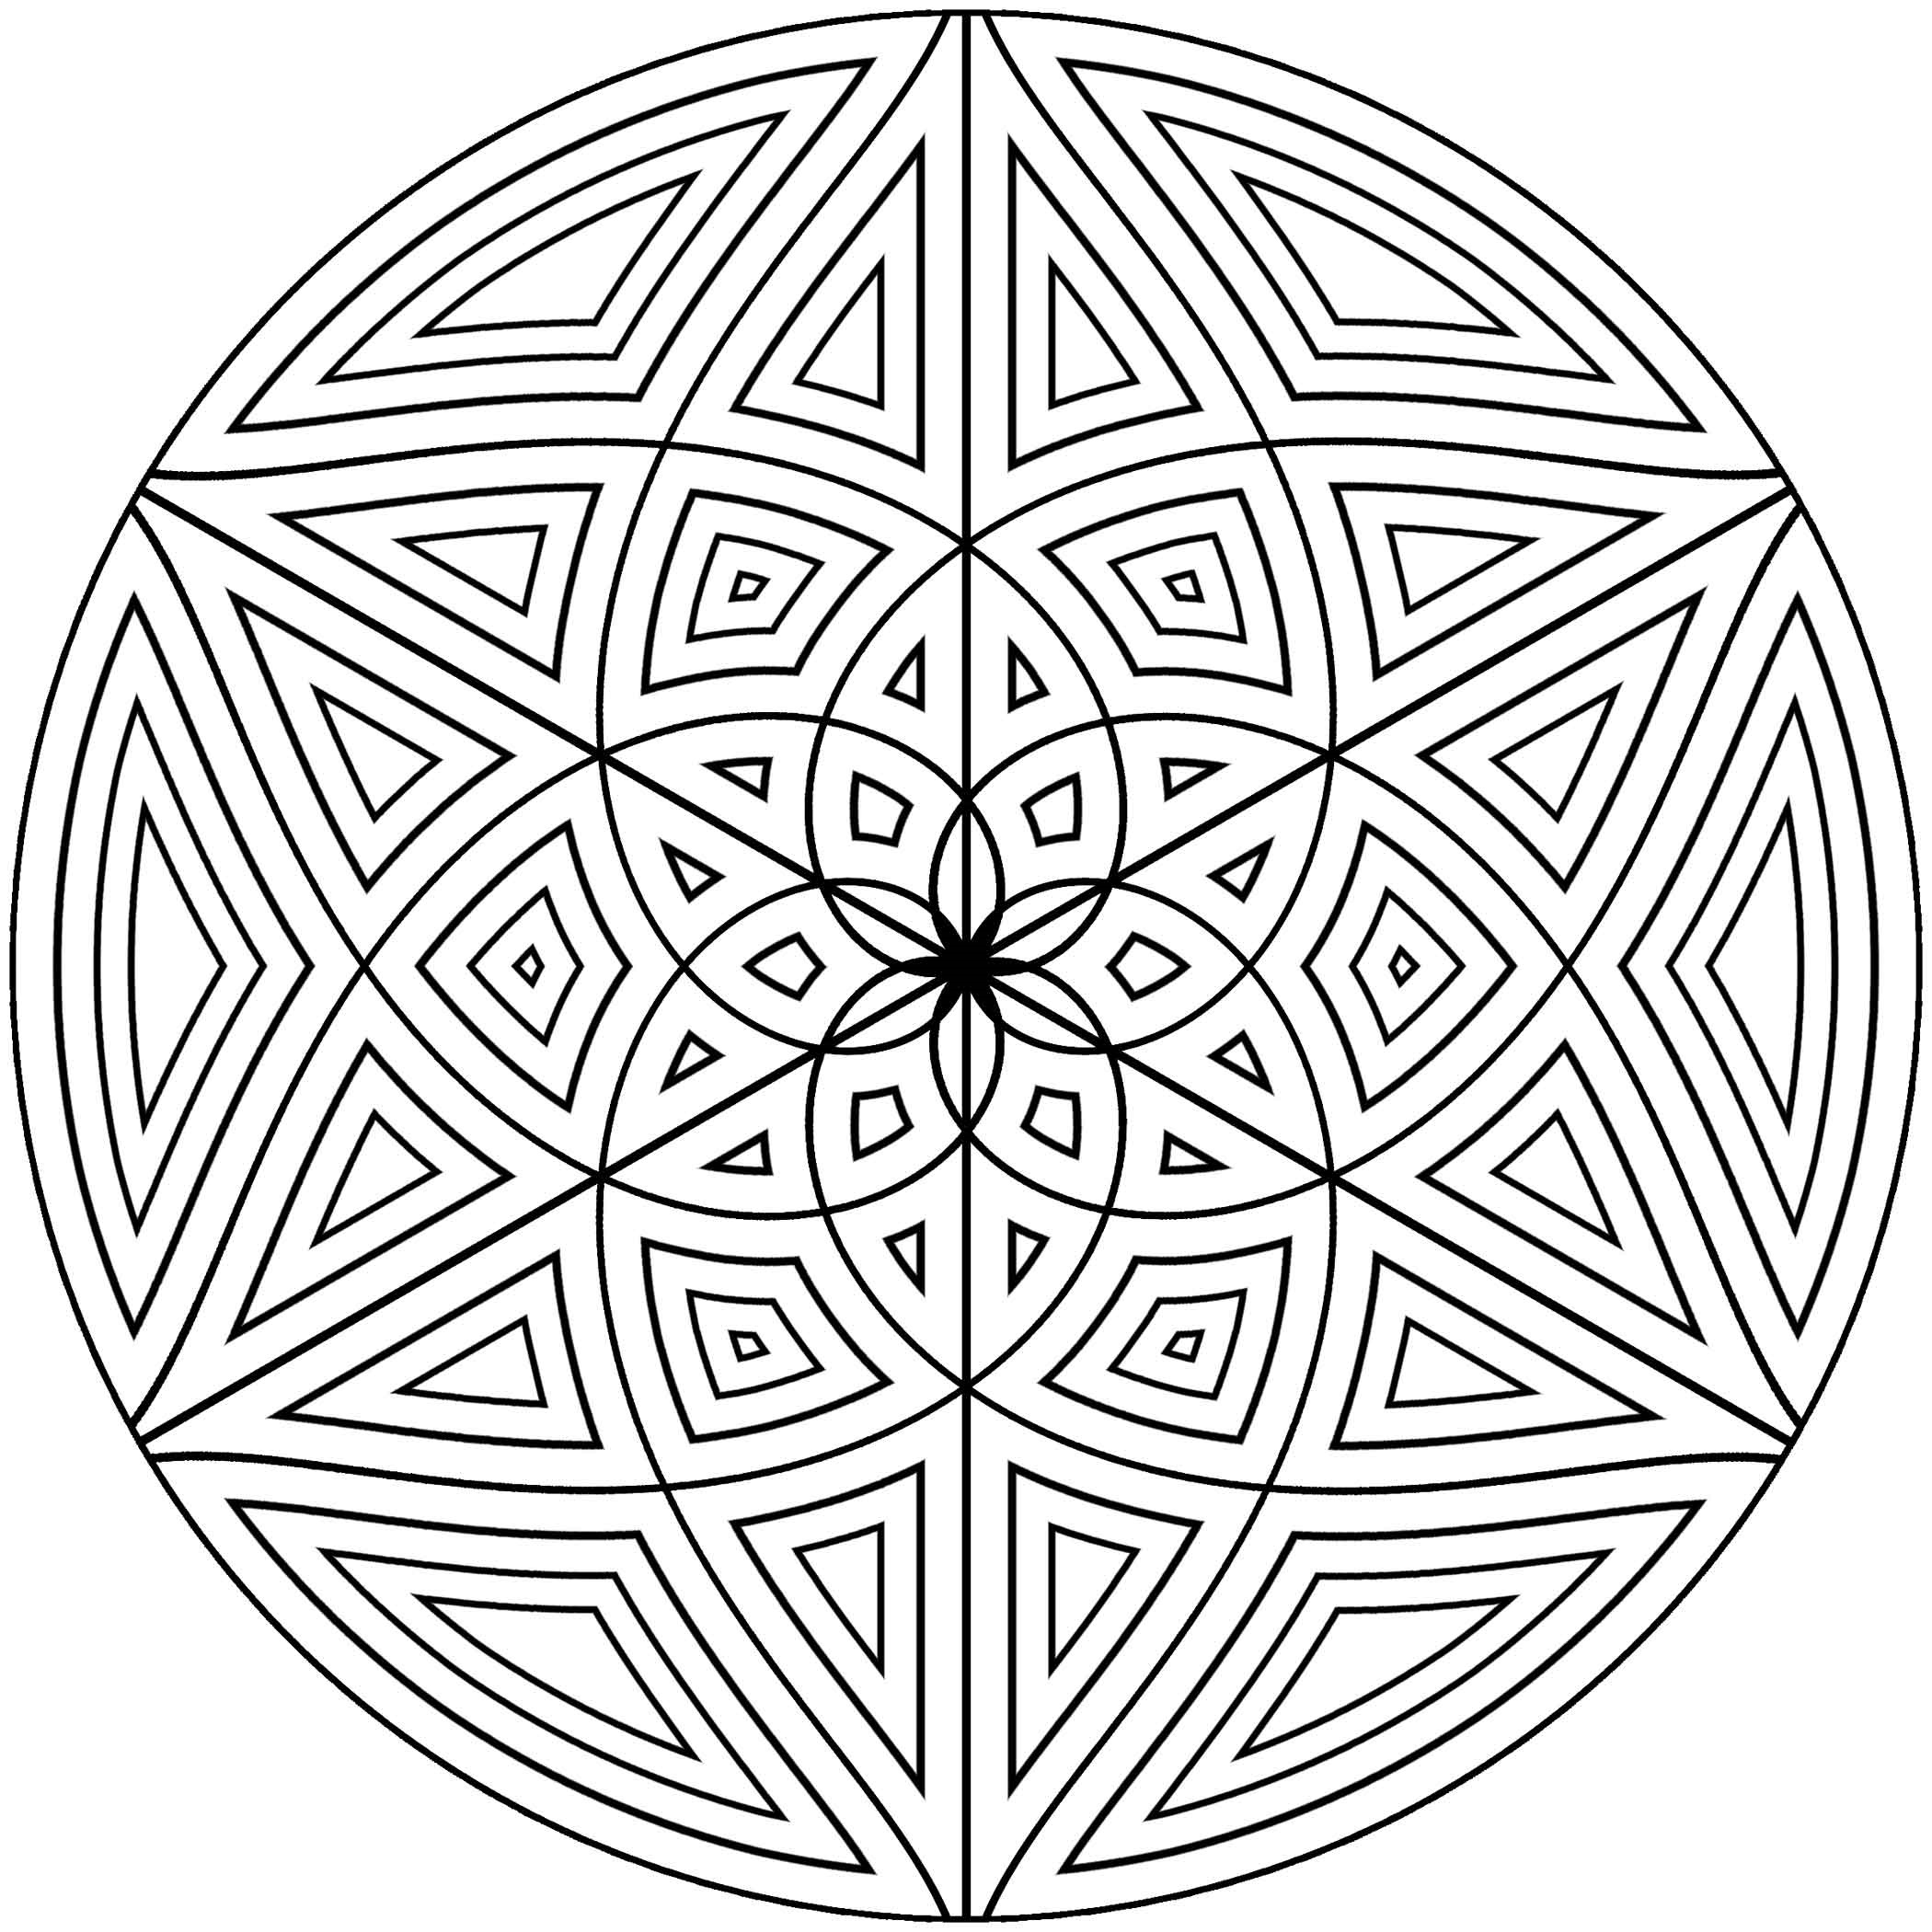 patern coloring pages | Pattern Coloring Pages - Best Coloring Pages For Kids